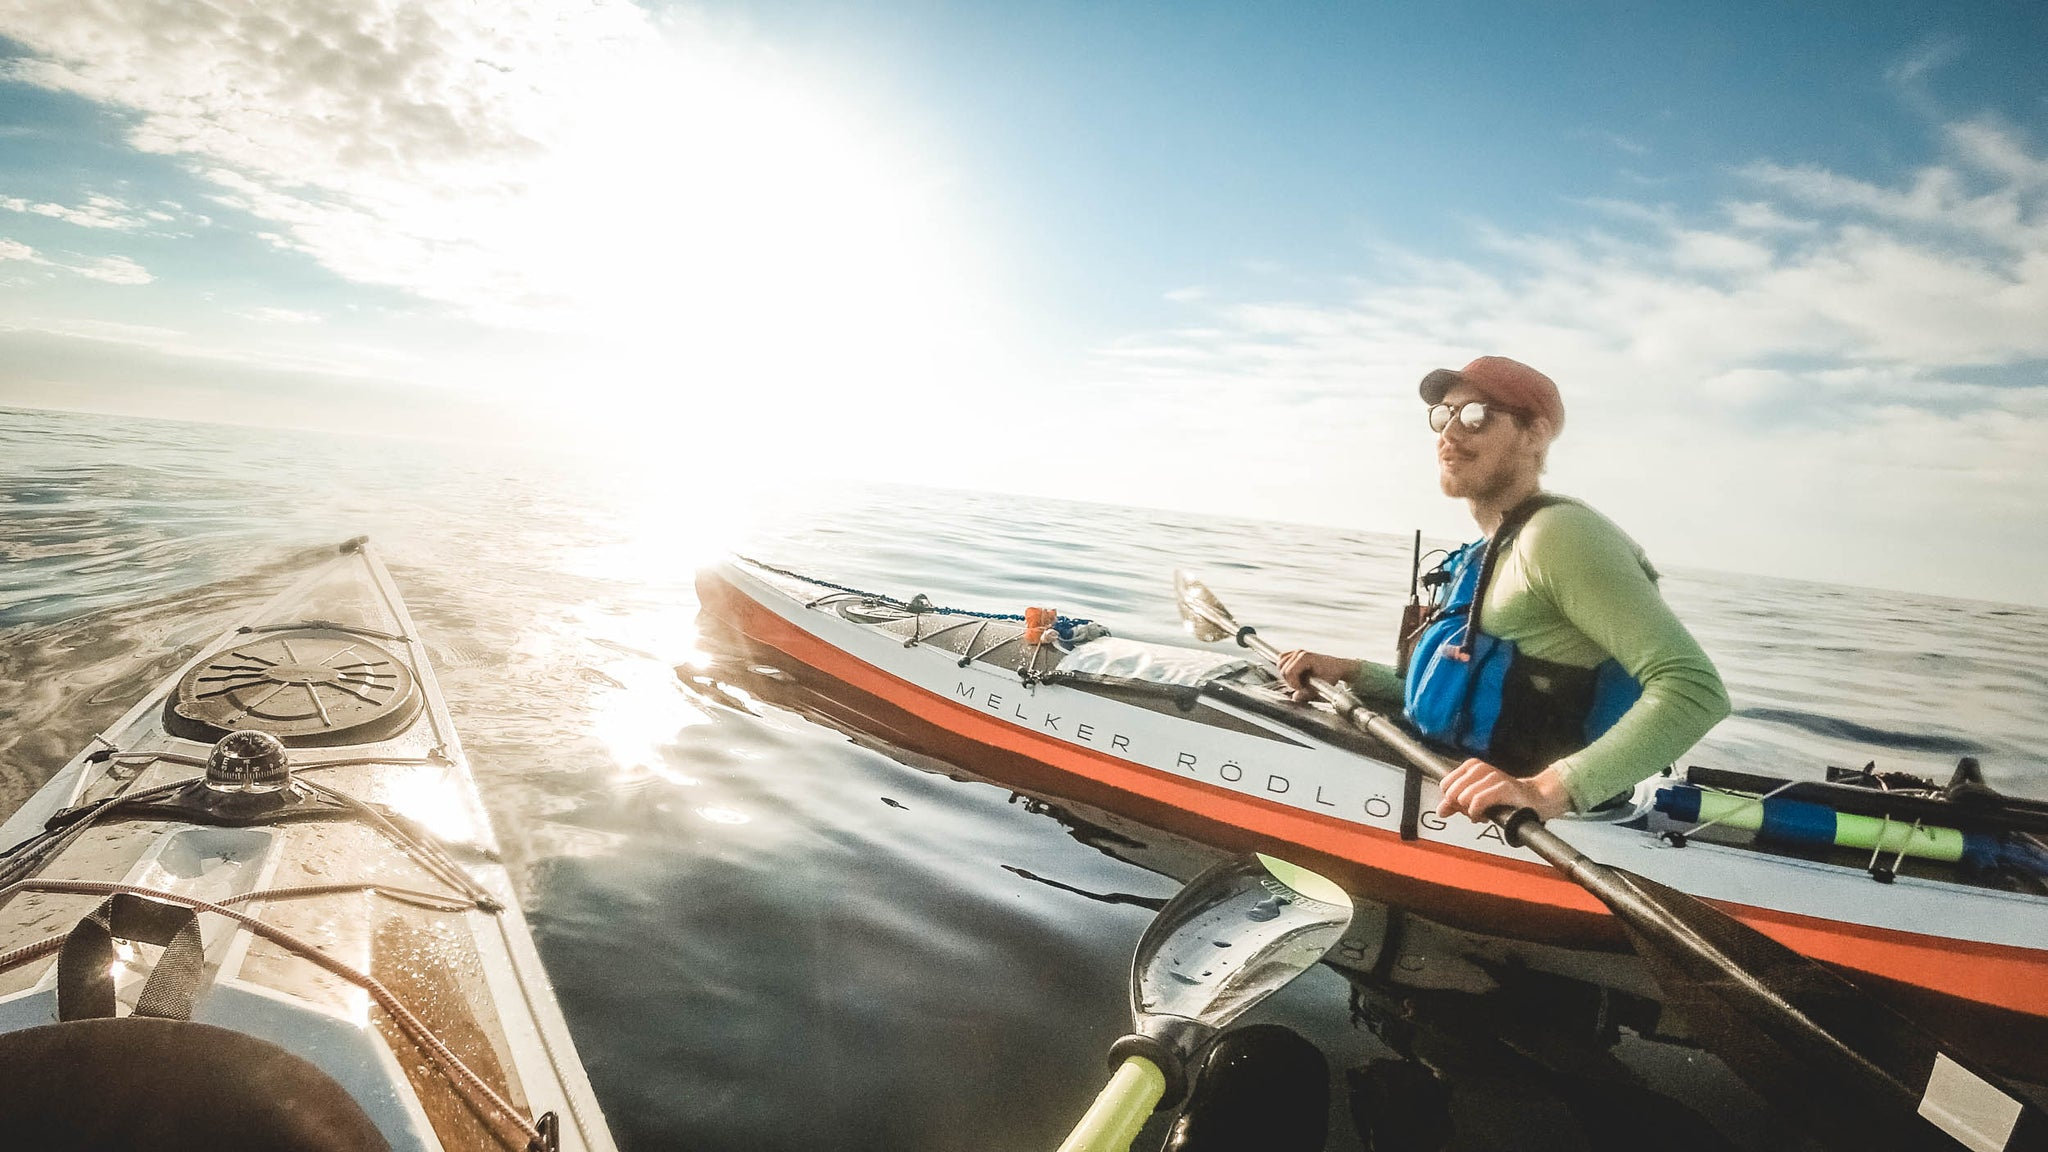 Linda & Emil paddled 60km over open sea, from Öland to Gotland.